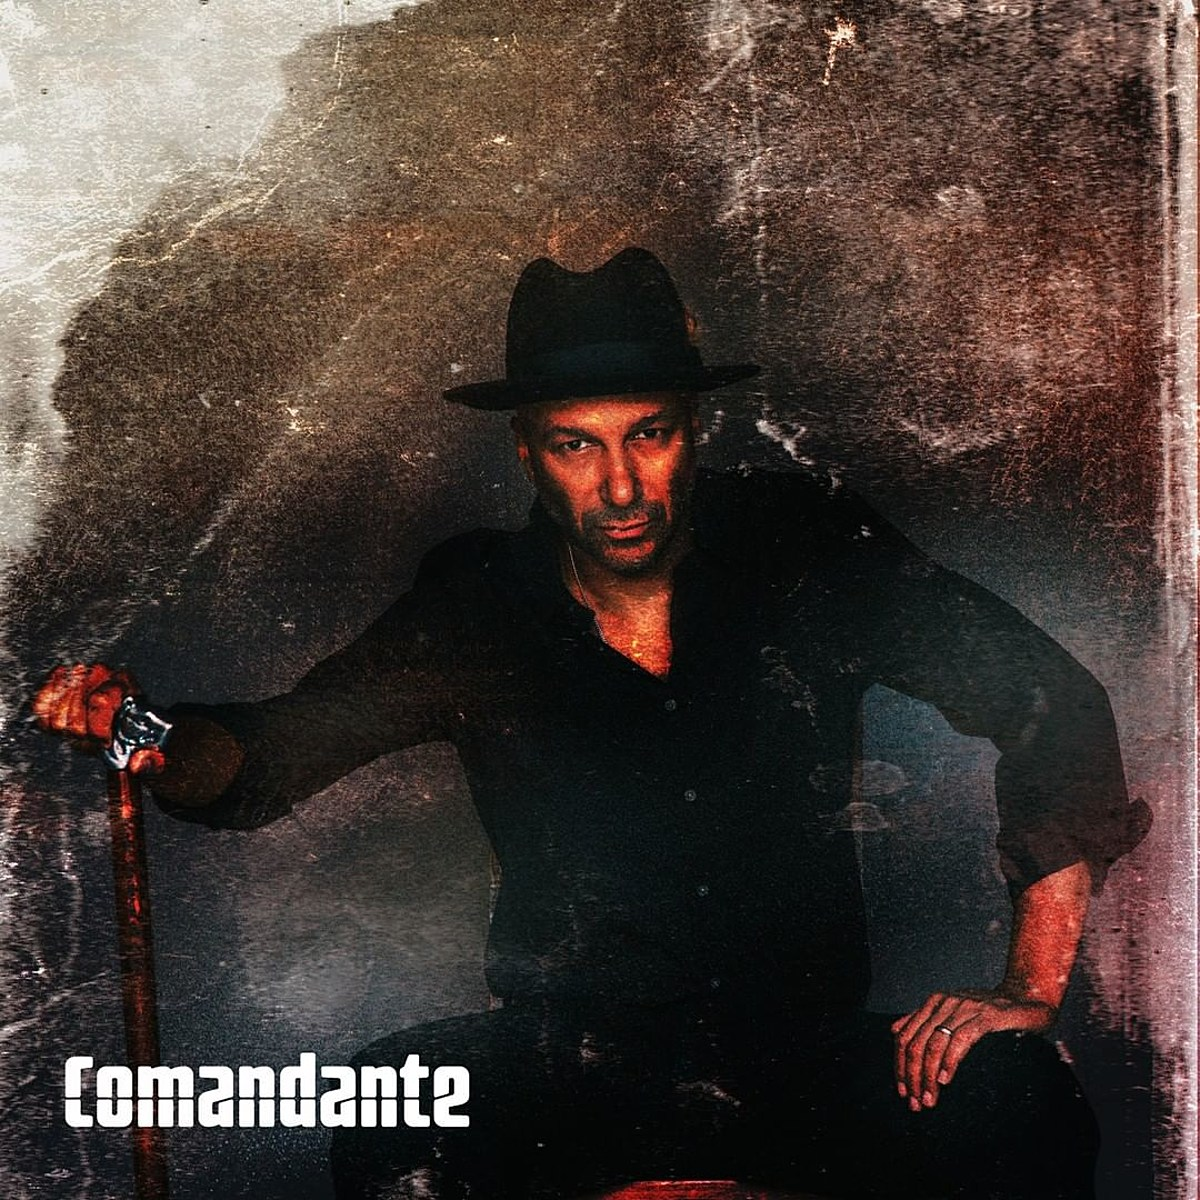 Tom Morello - Commandante